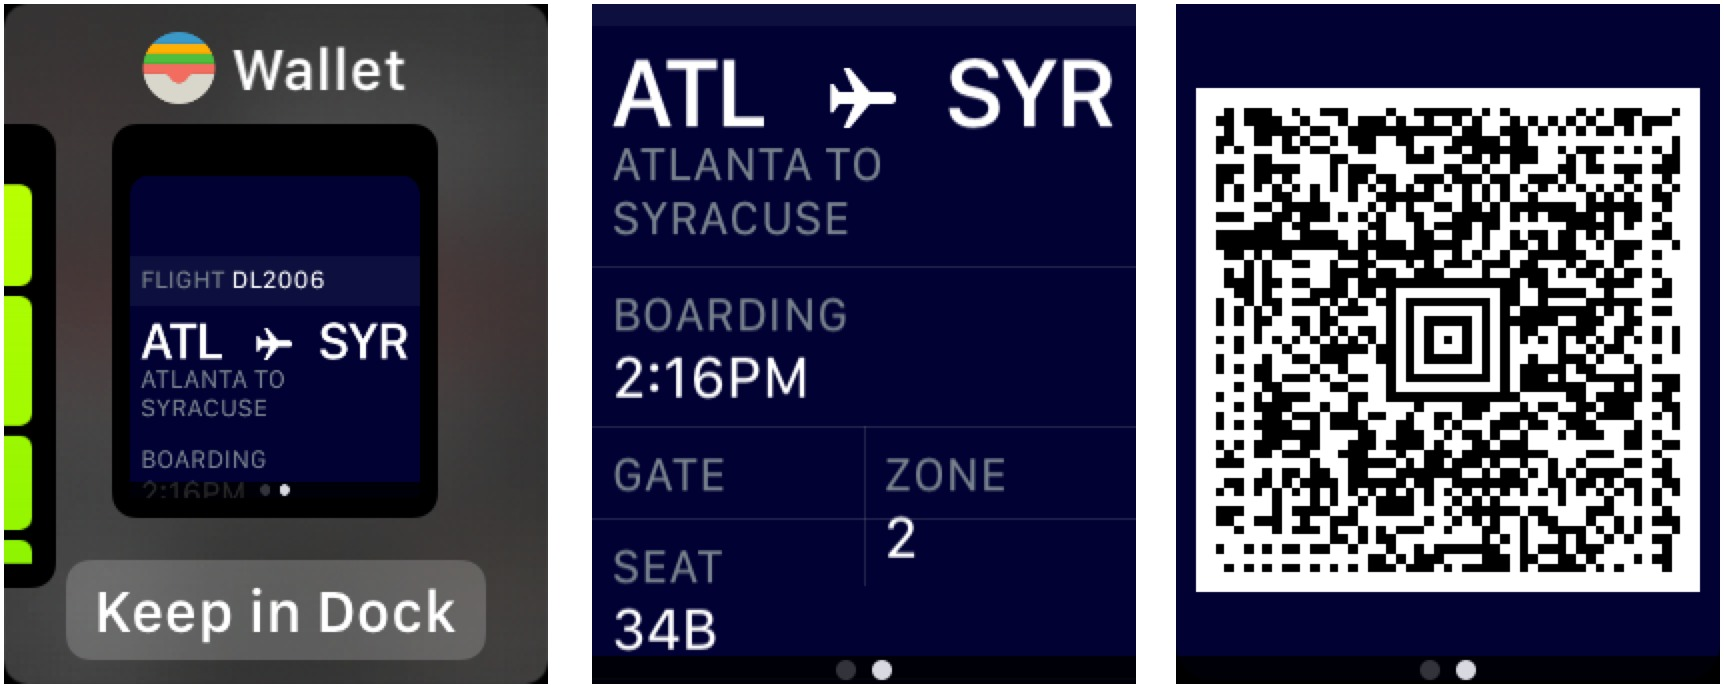 How To Set Up And Use Airline Boarding Passes In Wallet Tidbits